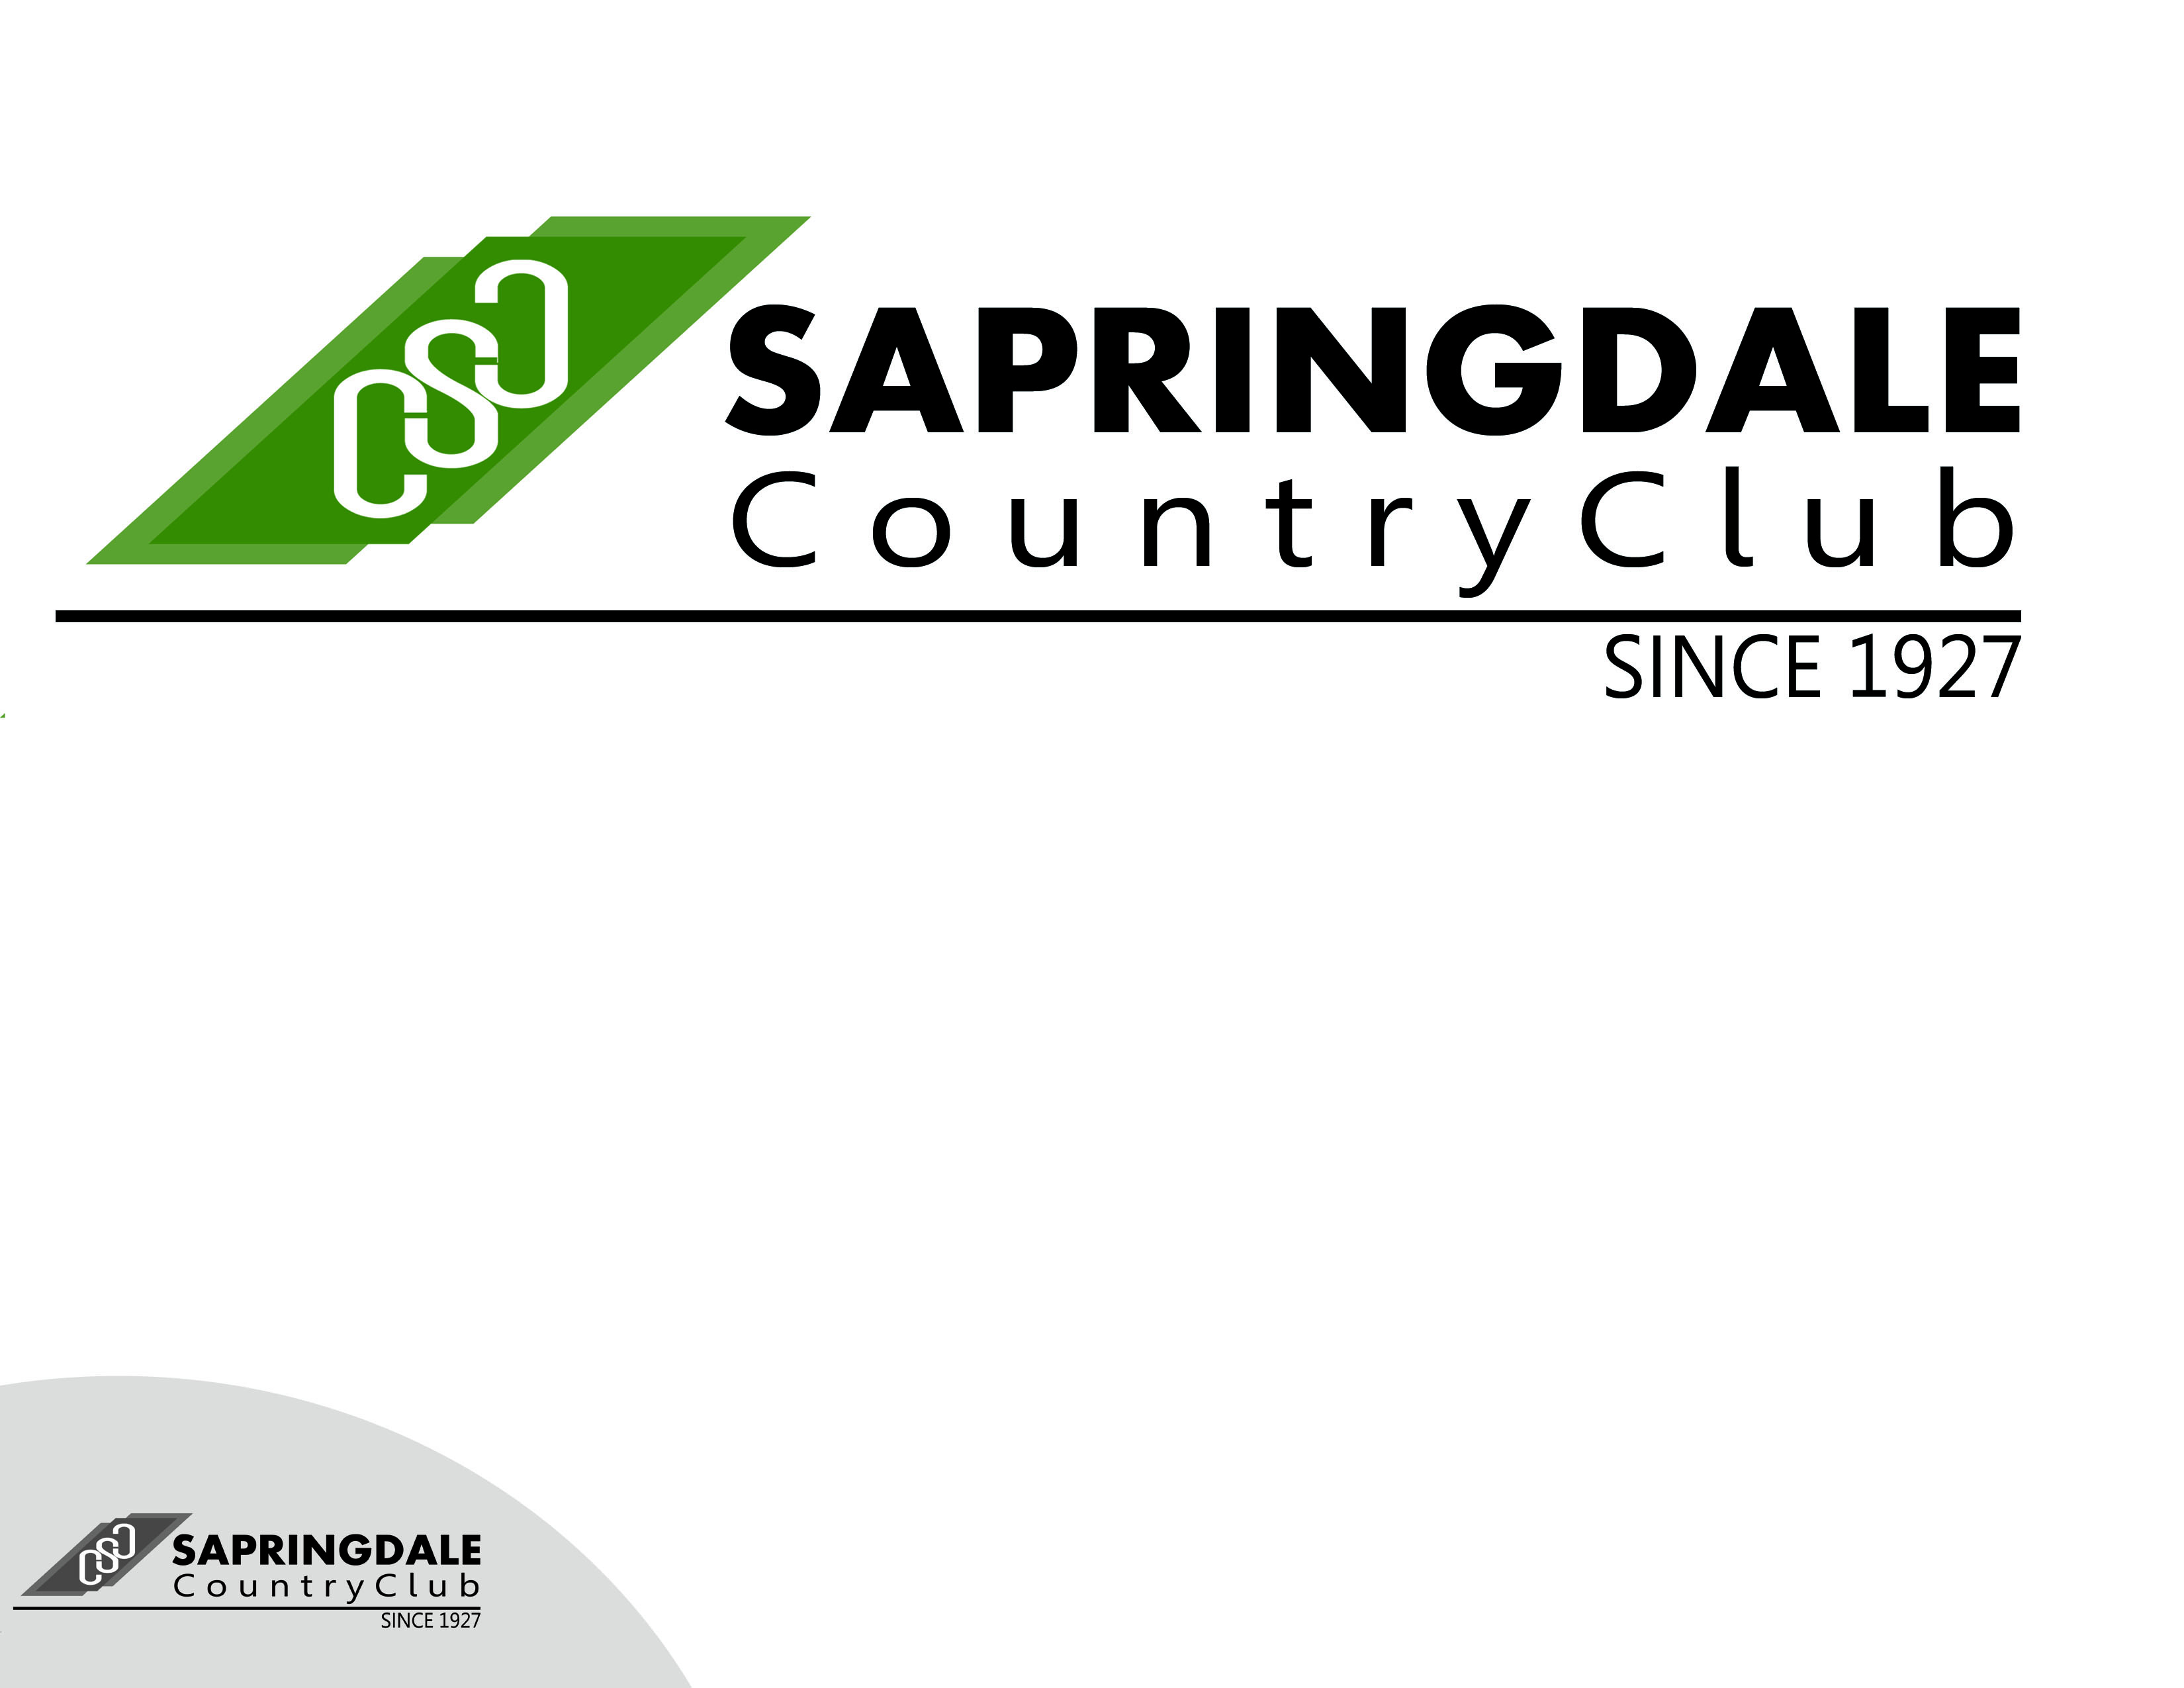 Logo Design by Alan Esclamado - Entry No. 11 in the Logo Design Contest Unique Logo Design Wanted for Springdale Country Club.